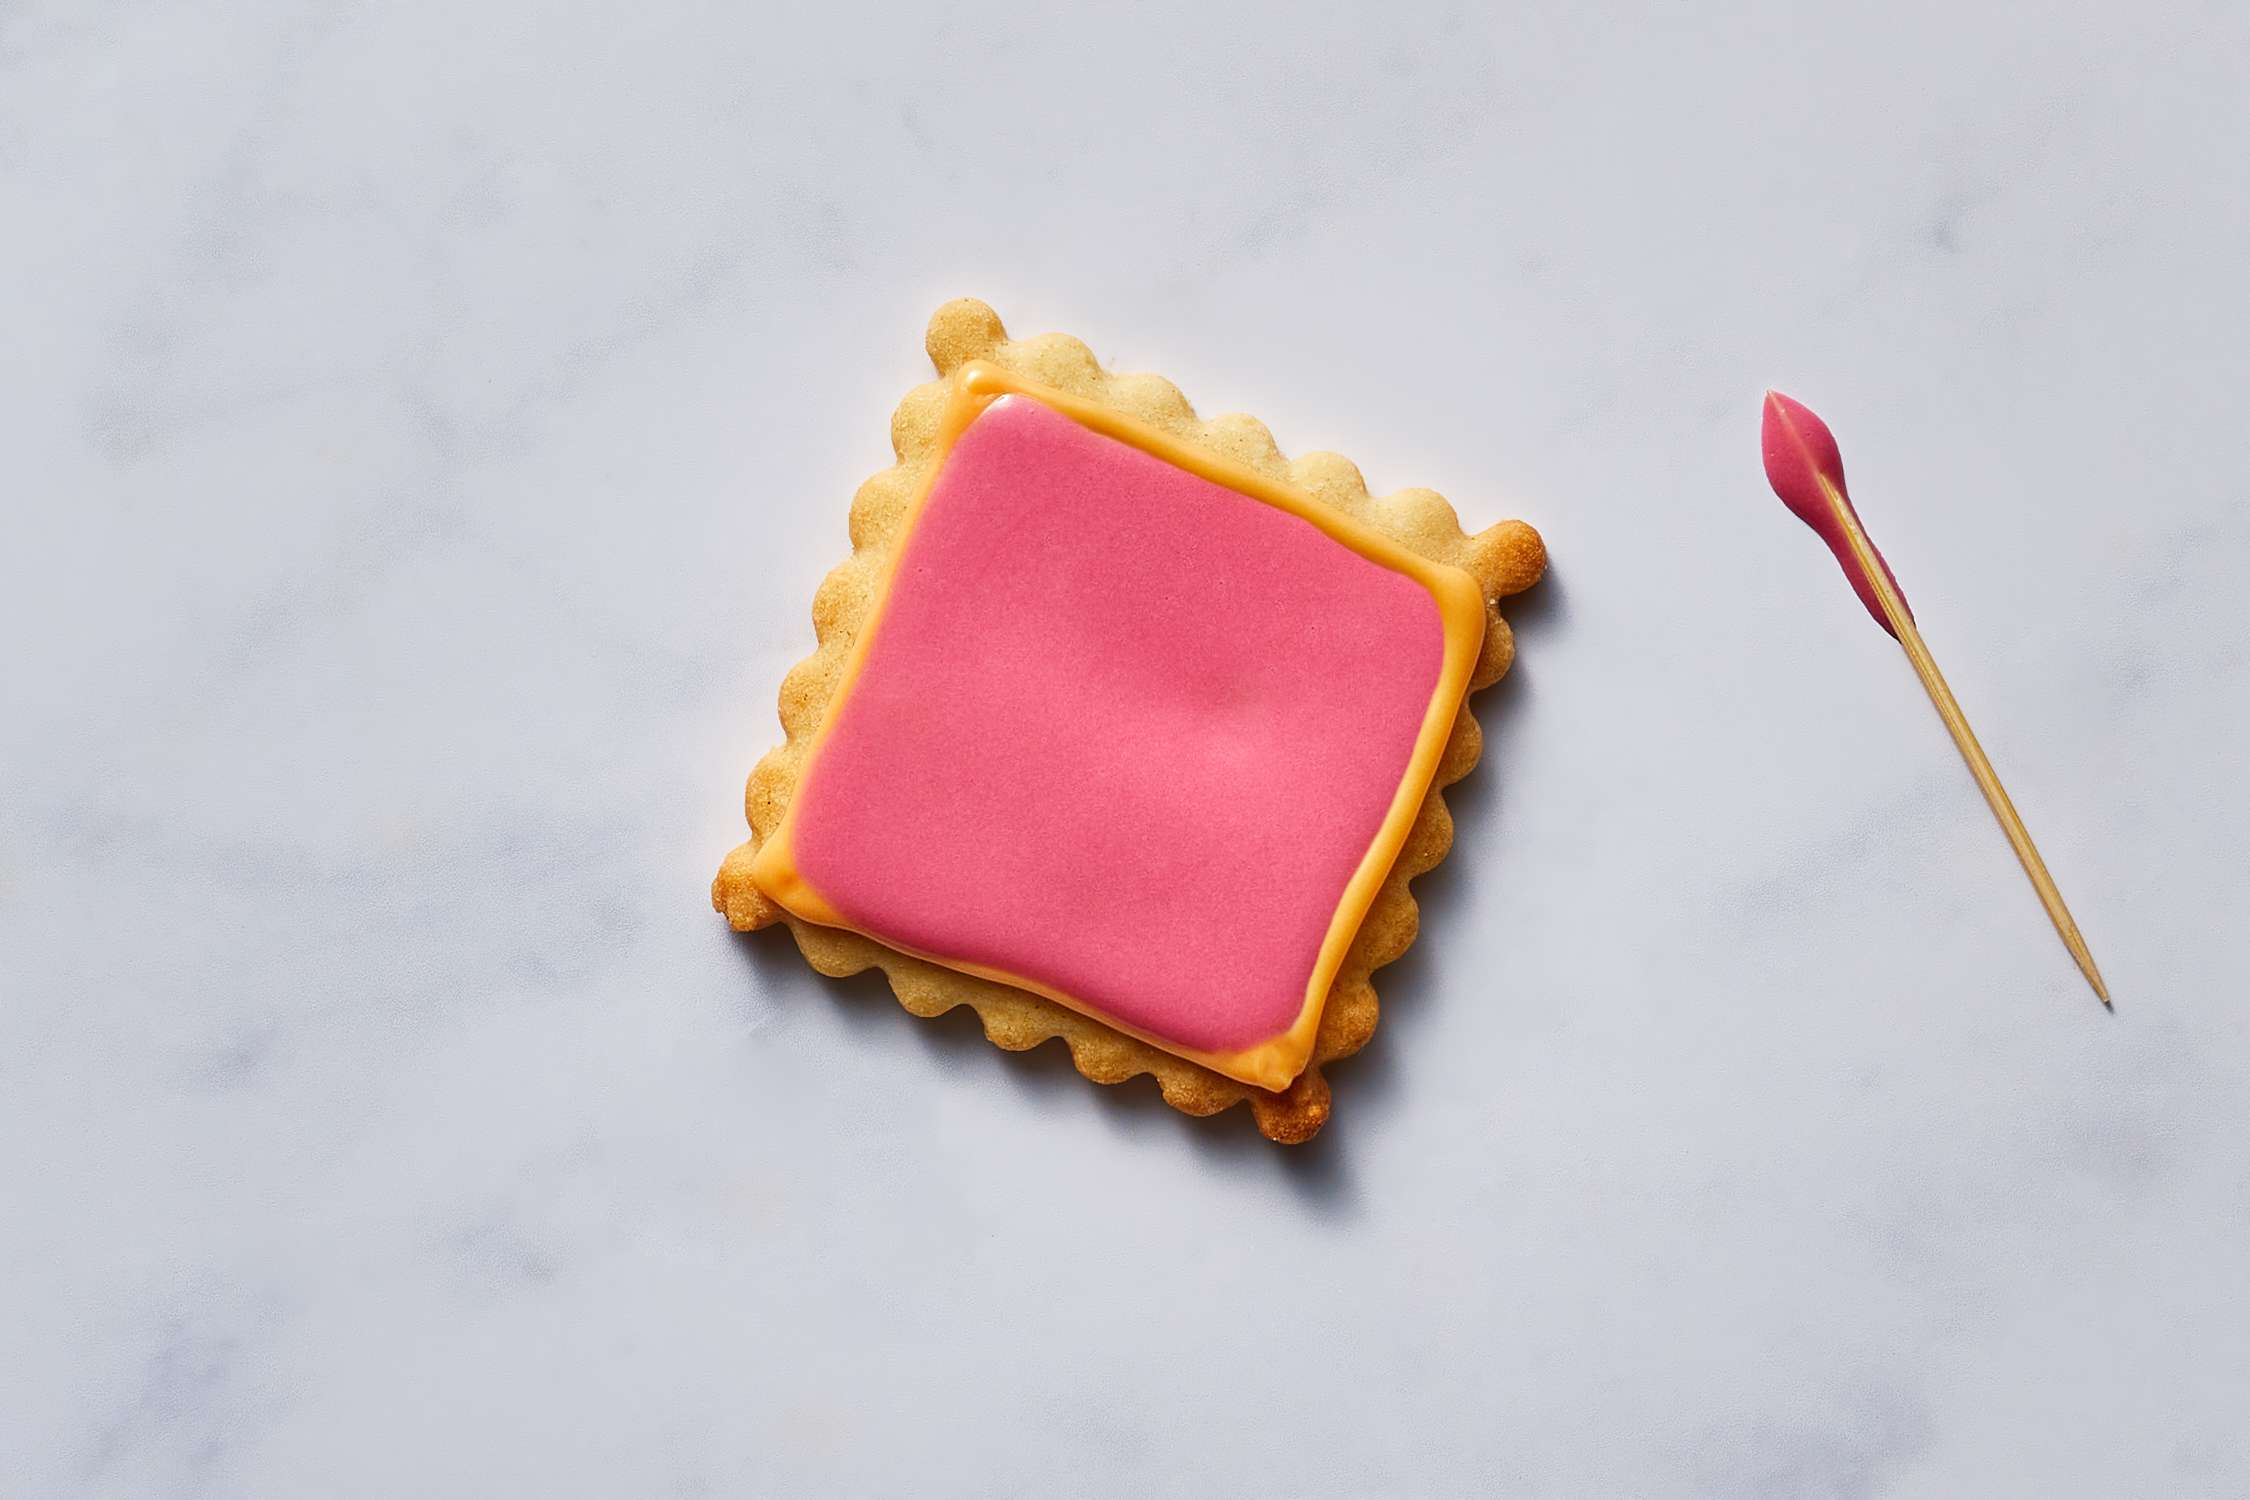 Toothpick to spreading the pink icing/frosting on cookie